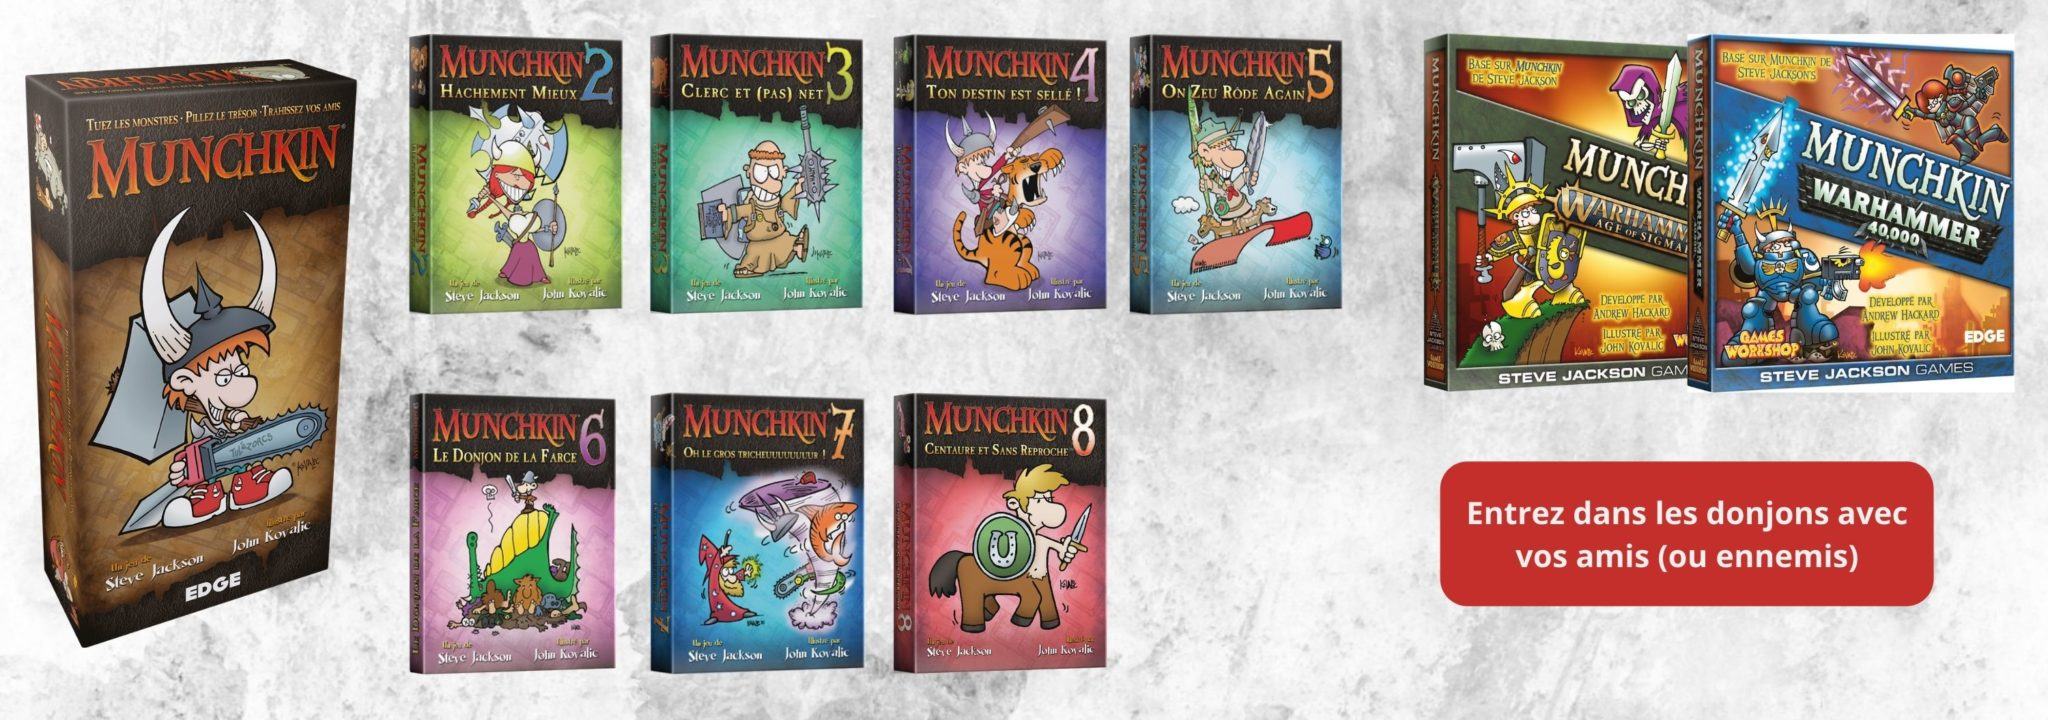 Collection Munchkin